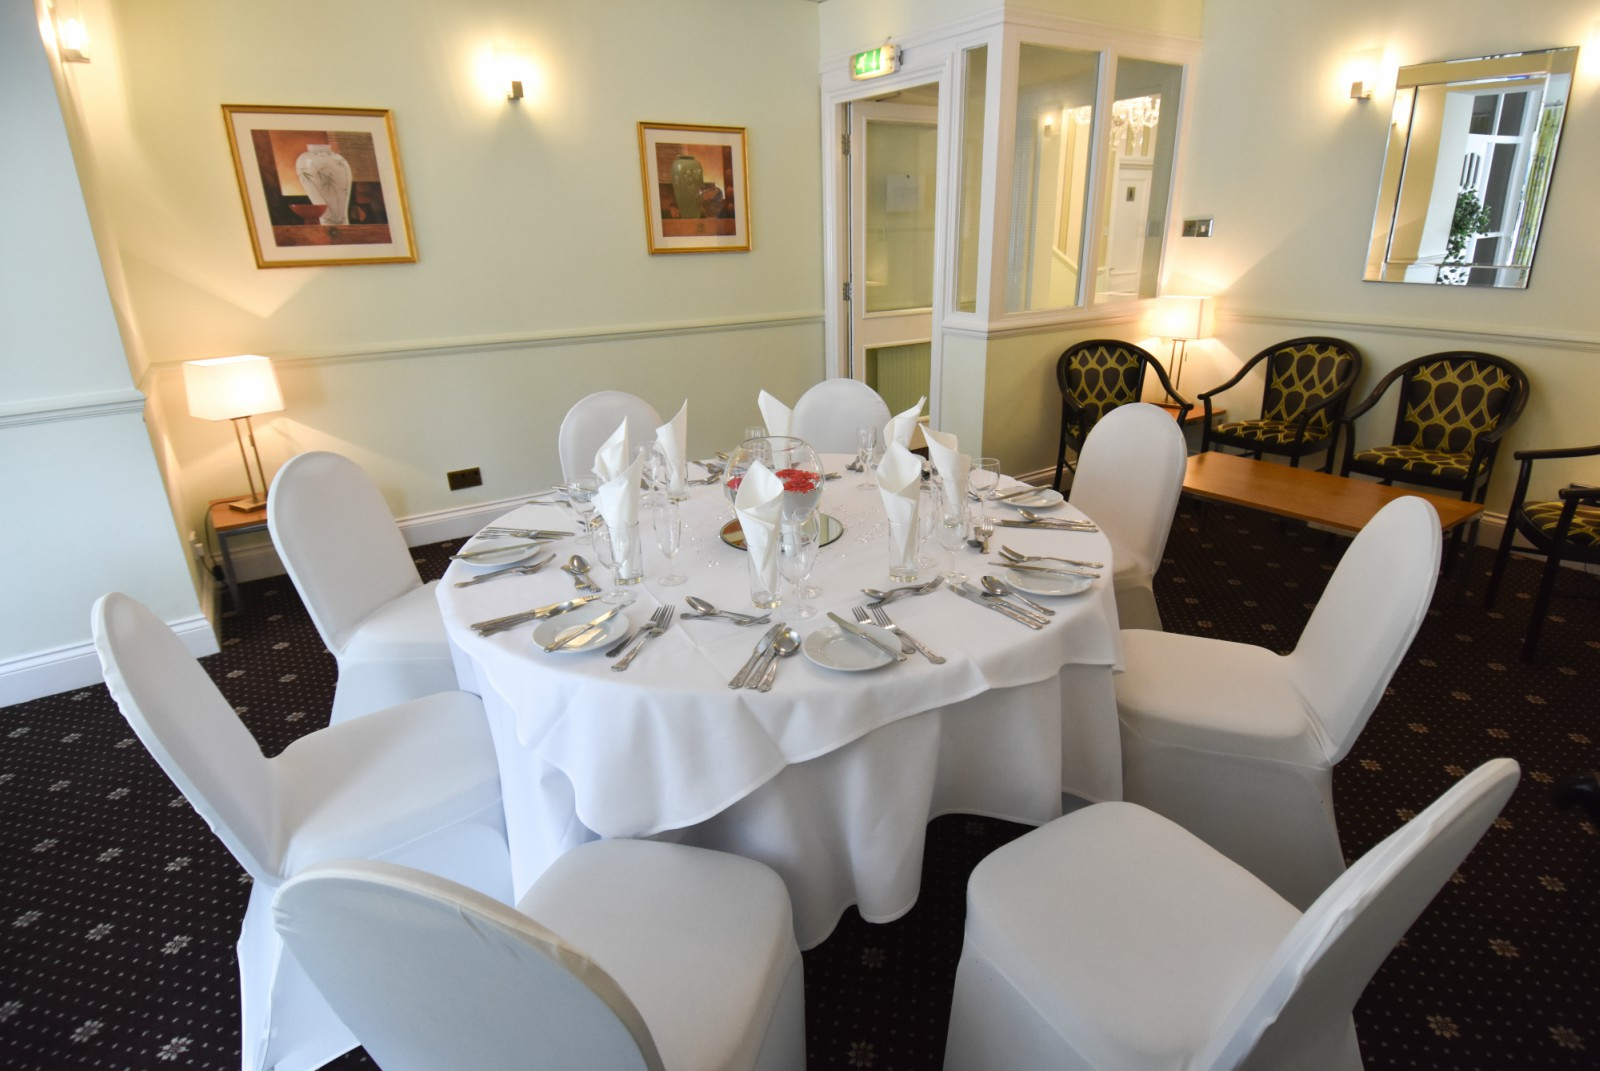 The Dorset room at The Mayfair Hotel